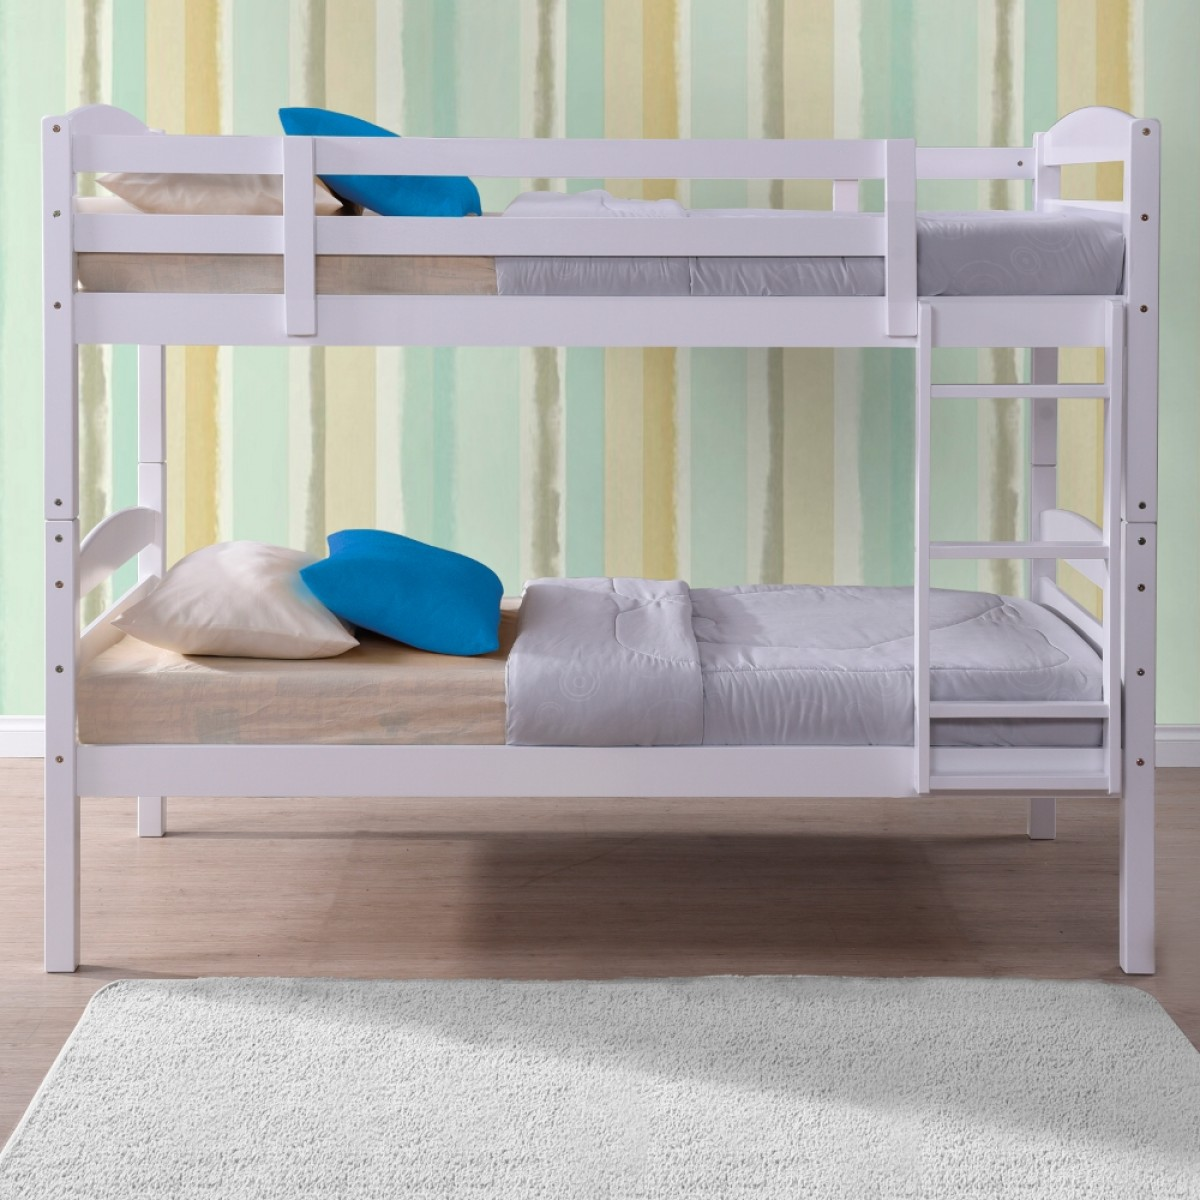 White Wooden Bunk Beds Chatsworth White Wooden Bunk Bed